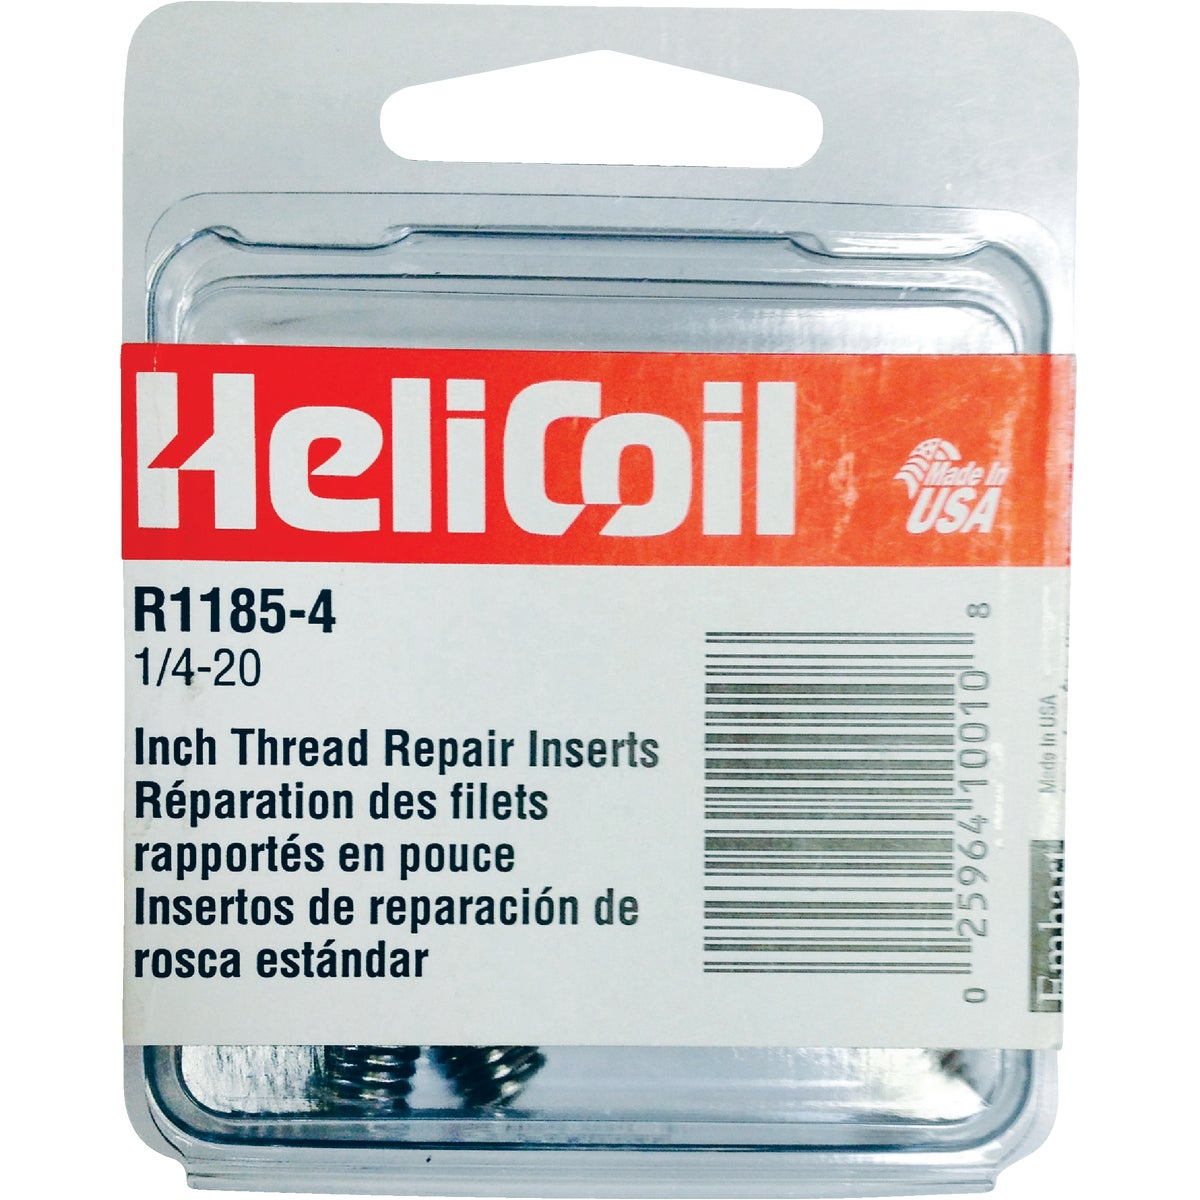 1/4-20 INSERT PACK - R1185-4 by Helicoil Div Emhart